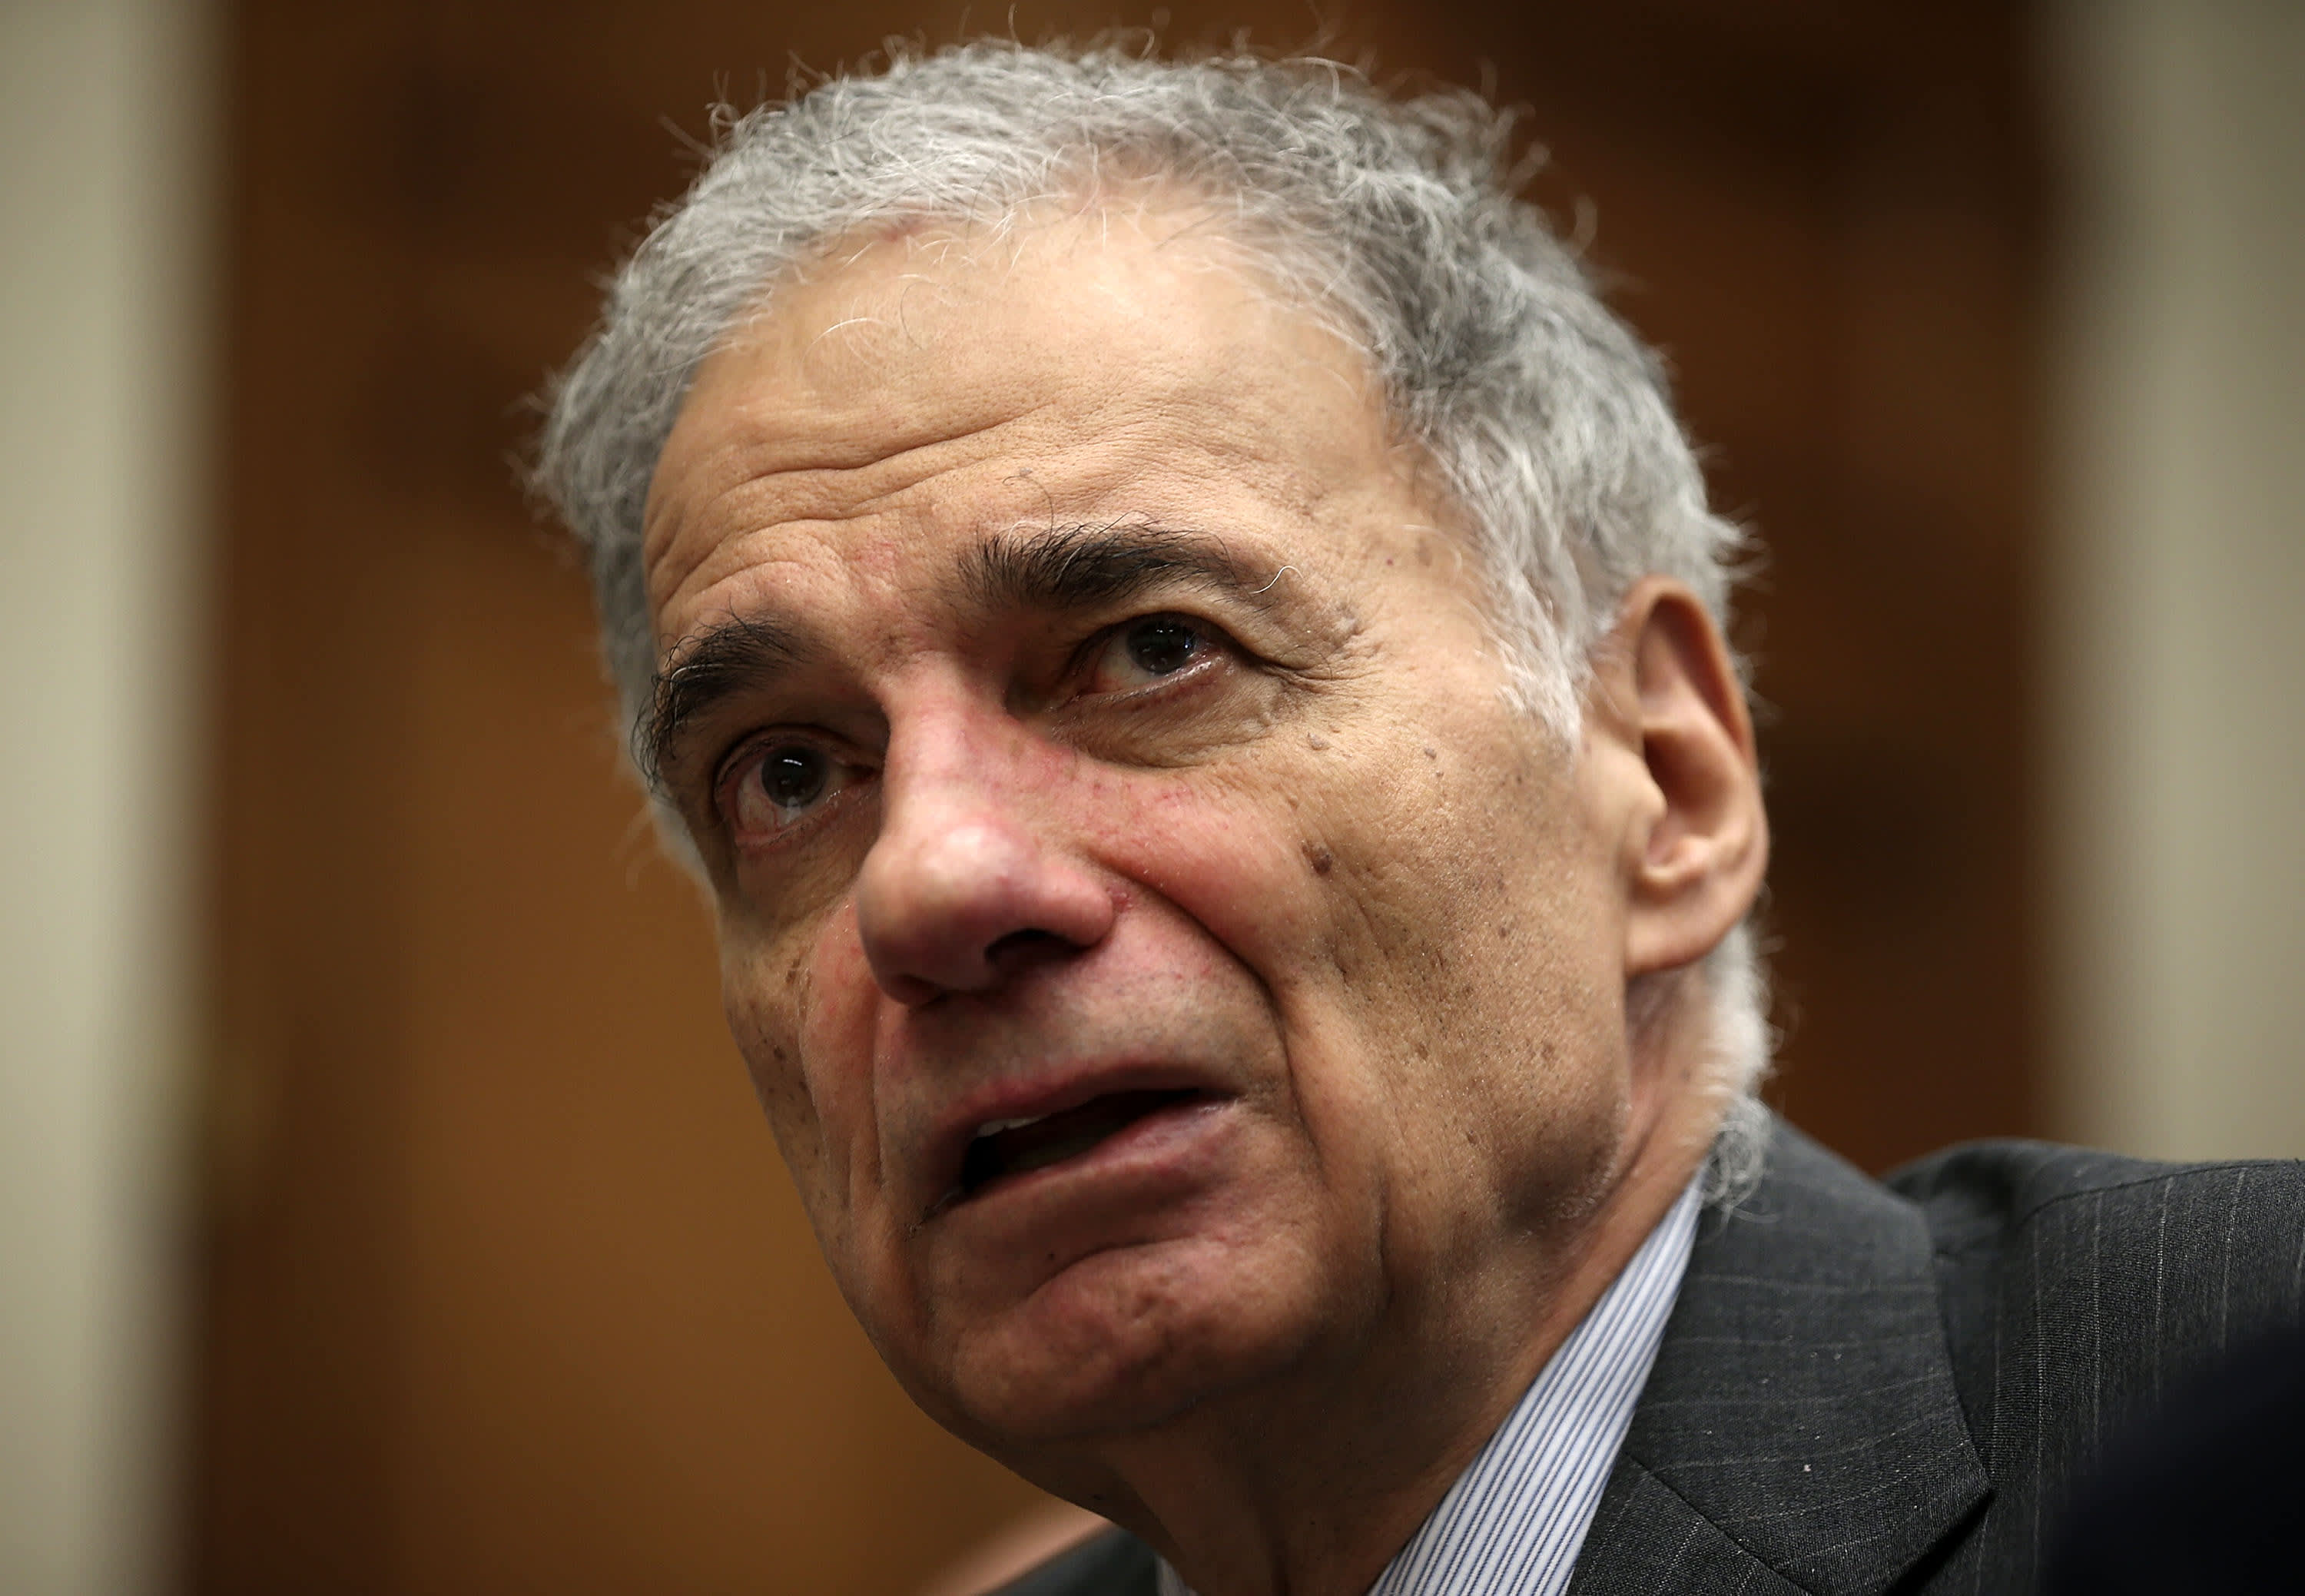 Ralph Nader, whose grandniece died in latest 737 Max crash, says the FAA is in Boeing's pocket